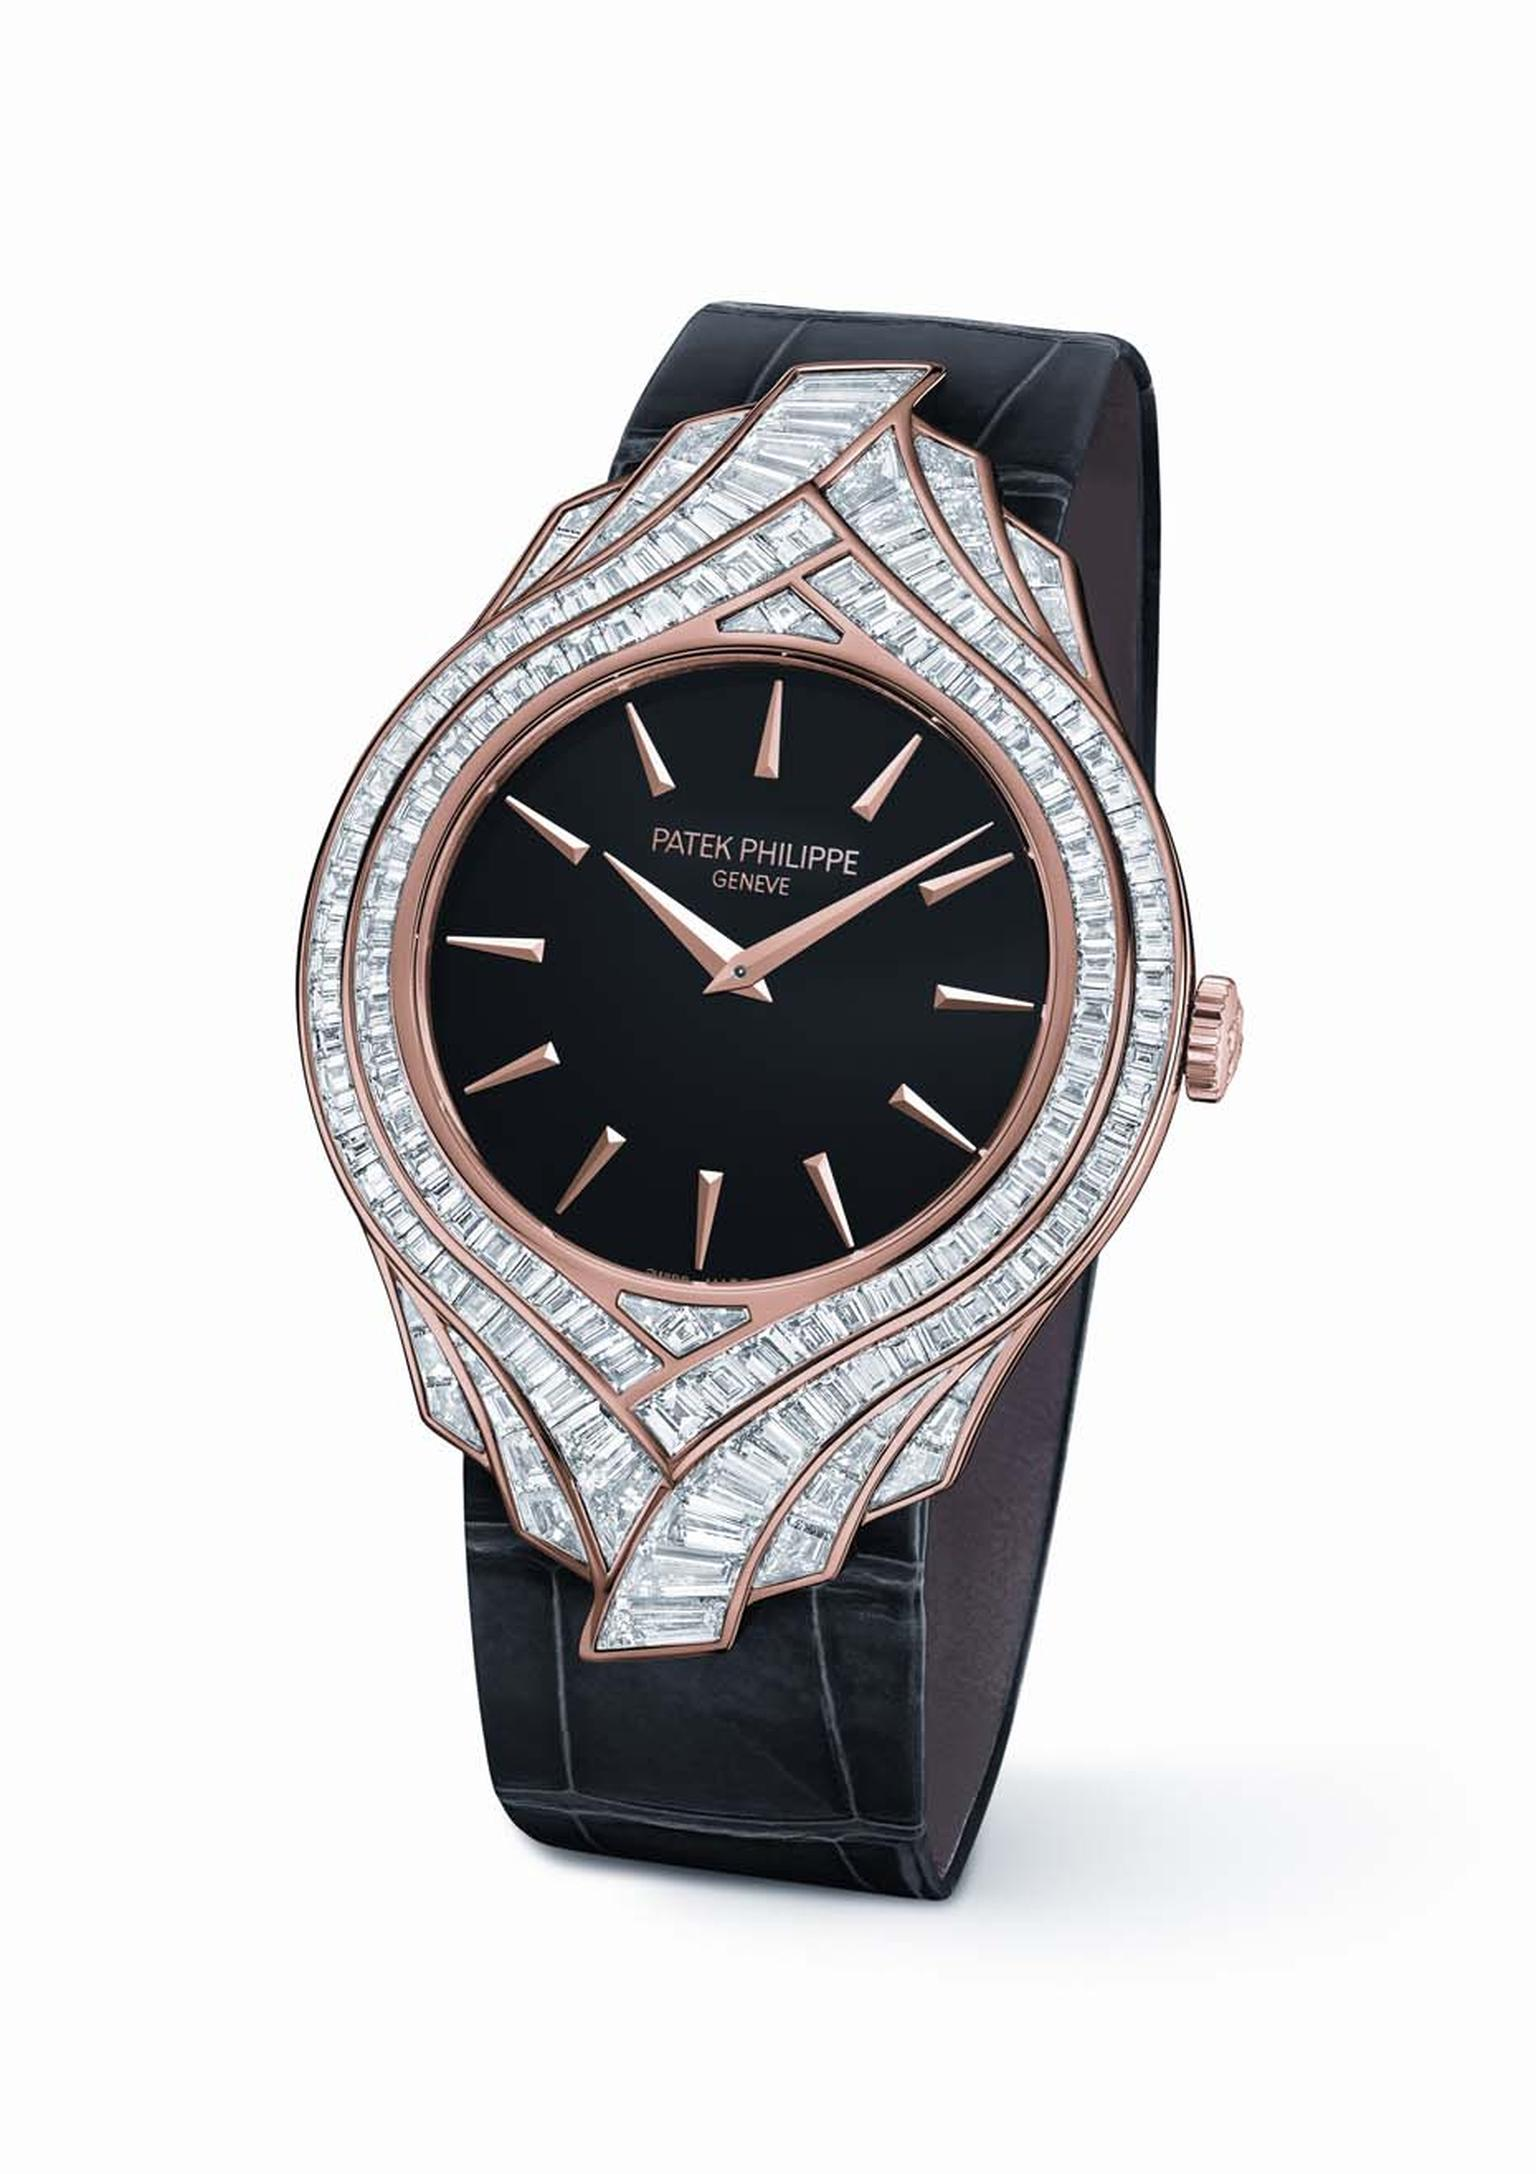 Patek Philippe's Calatrava Haute Joaillere Ref. 4895R watch in rose gold, with a black lacquered dial, rose gold hour markers, takes the contours of the 1932 Calatrava model and adorns them with a diamond collar